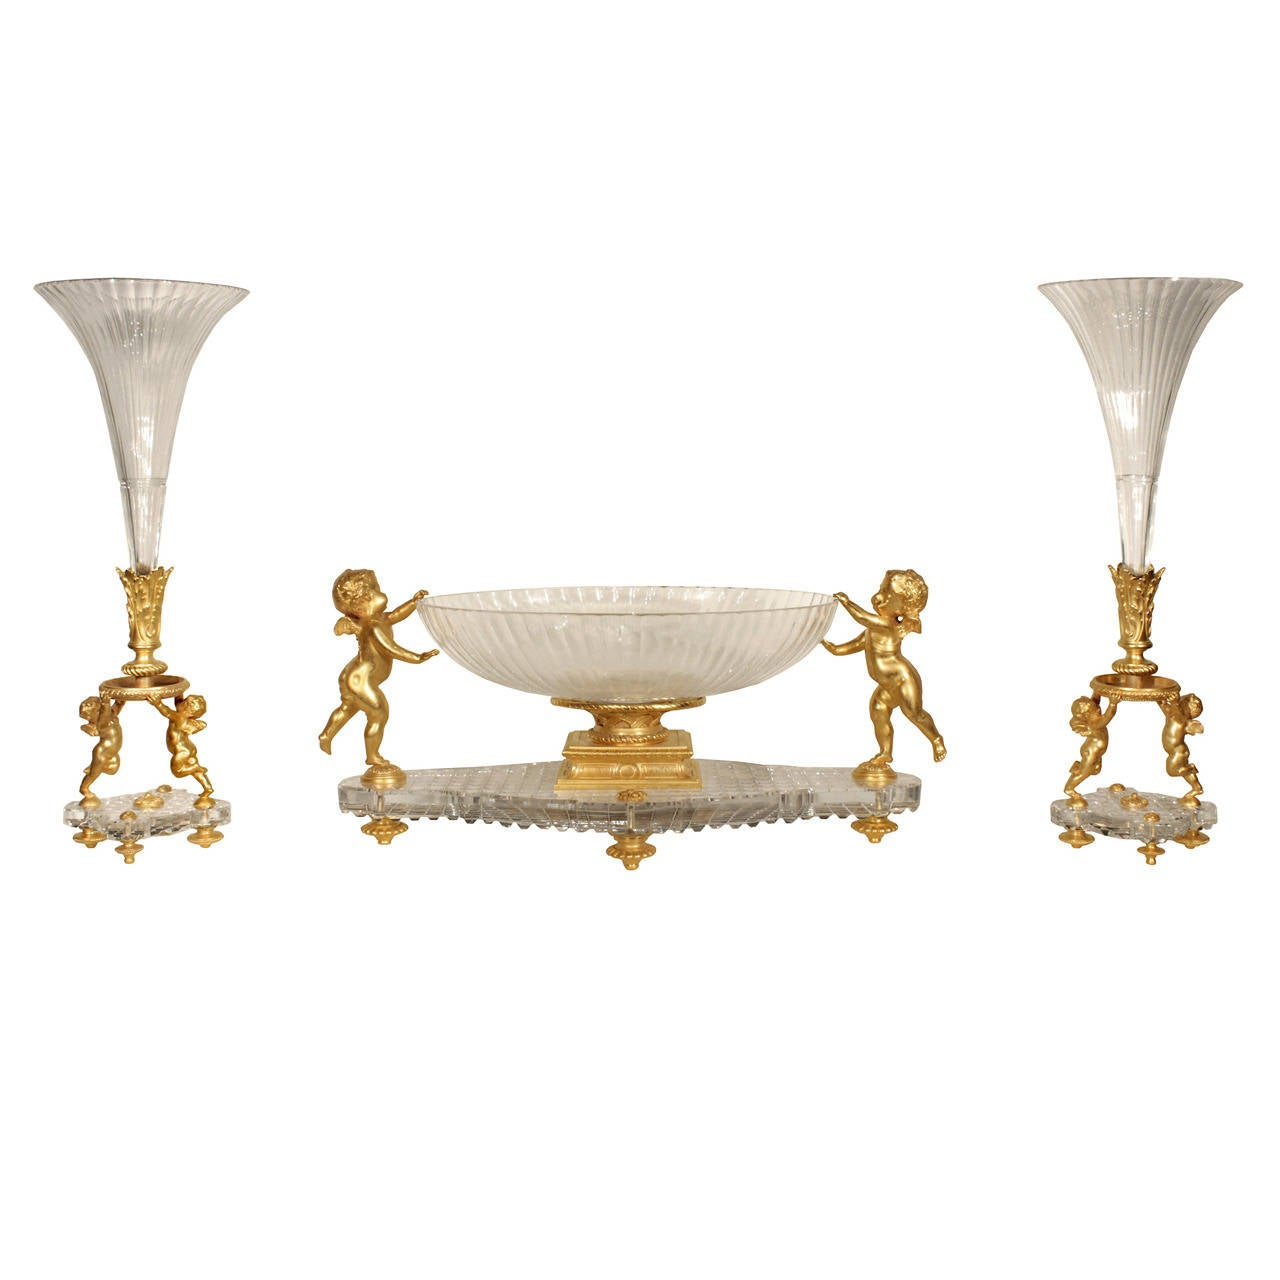 French 19th Louis XVI Style Crystal and Ormolu Centerpiece Set, Signed Baccarat